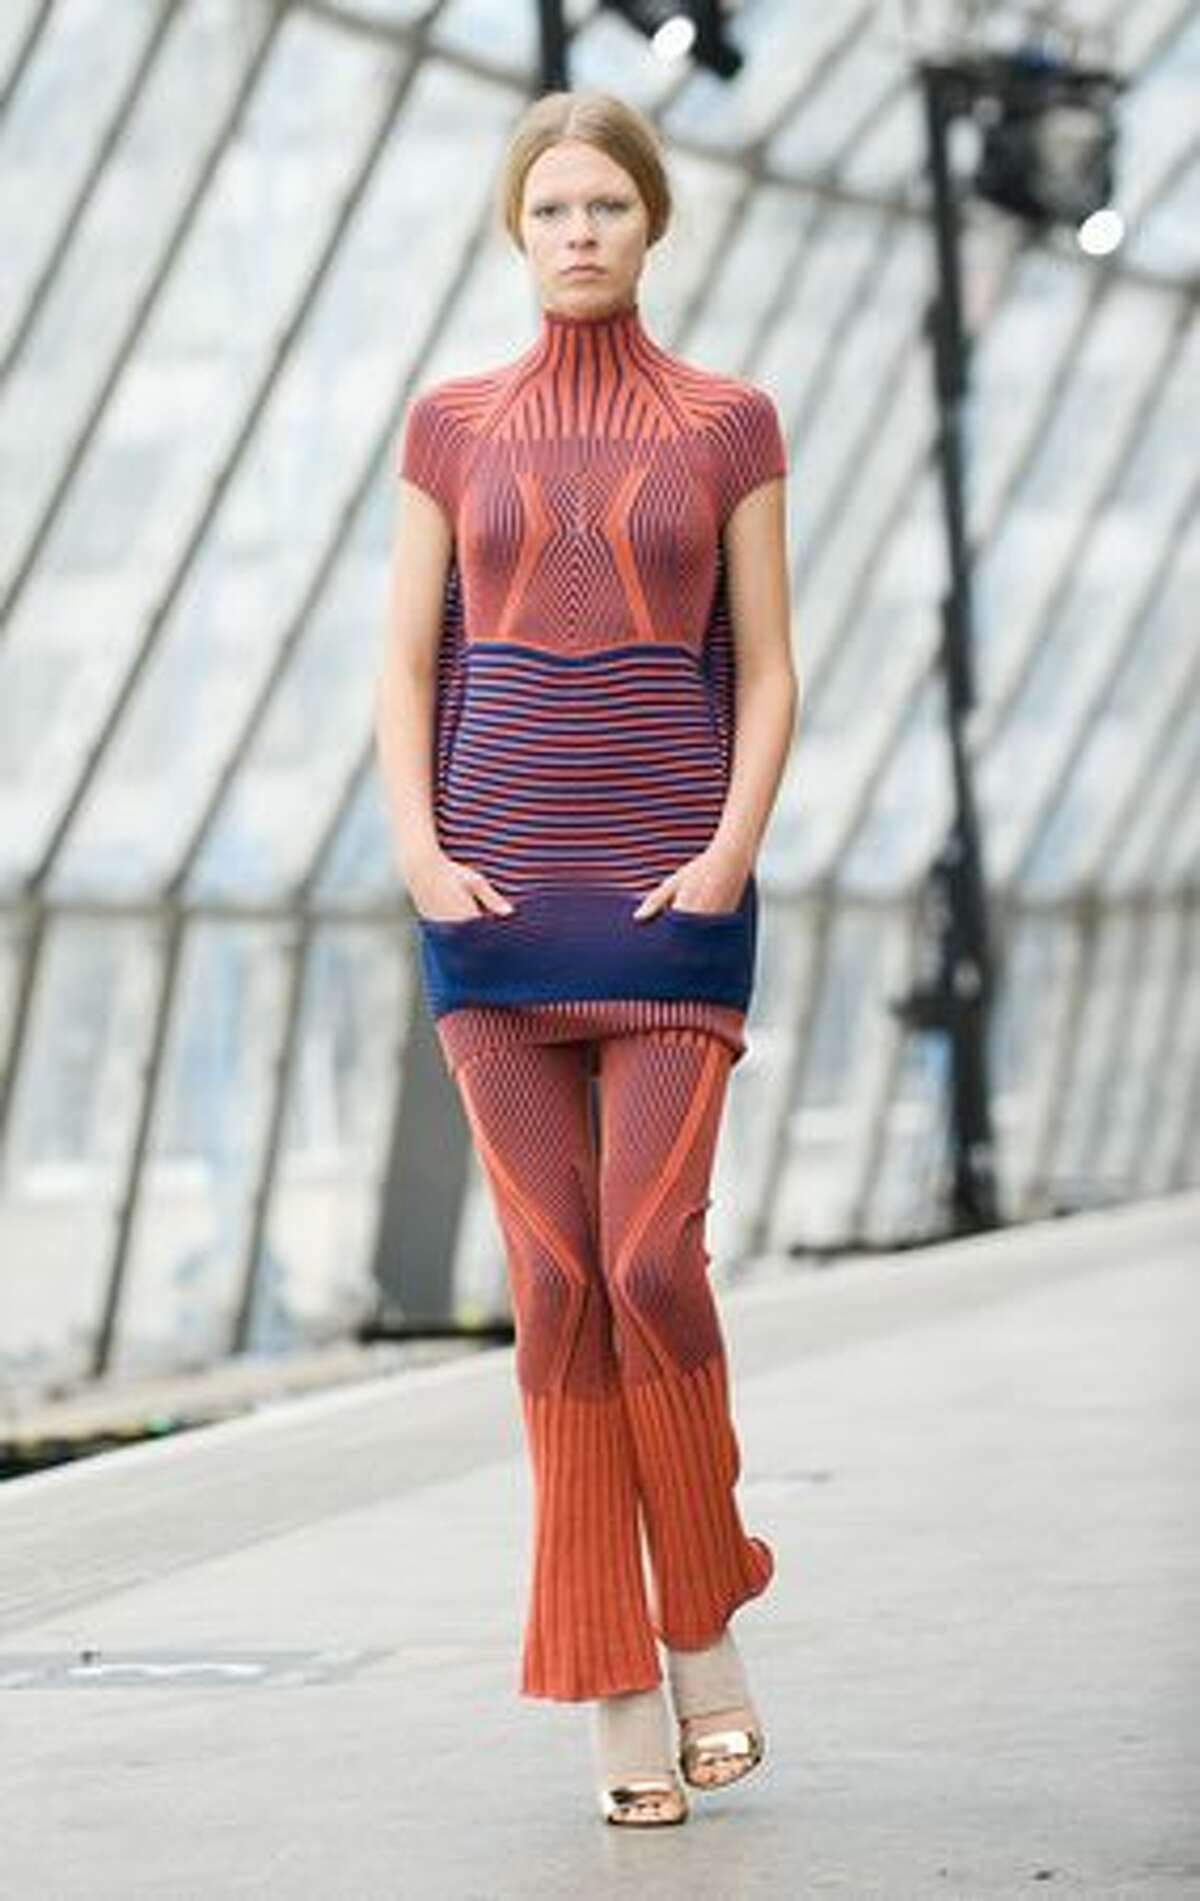 A model walks the catwalk at the Peter Pilotto spring/summer 2011 fashion show at the Topshop Venue at Waterloo Station during London Fashion Week on Monday, Sept. 20, 2010.